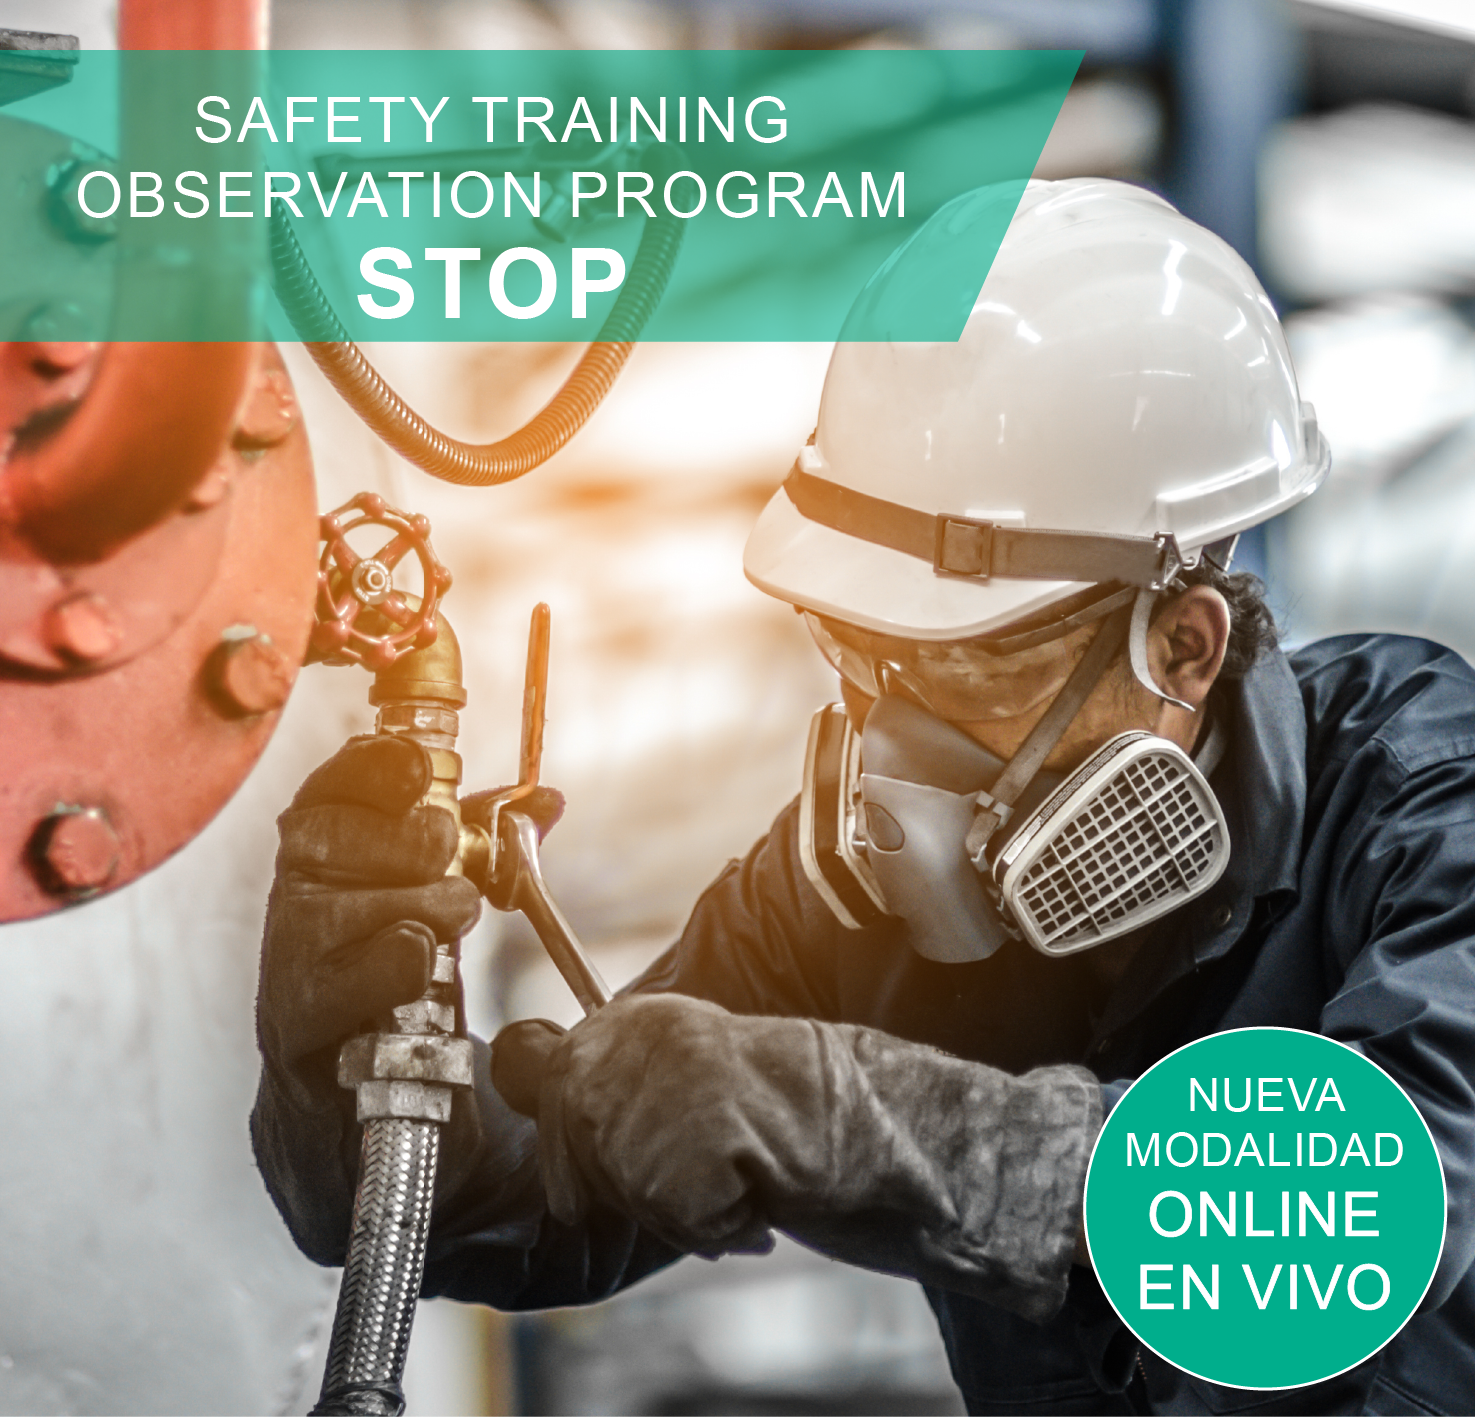 SAFETY TRAINING OBSERVATION PROGRAM (STOP)